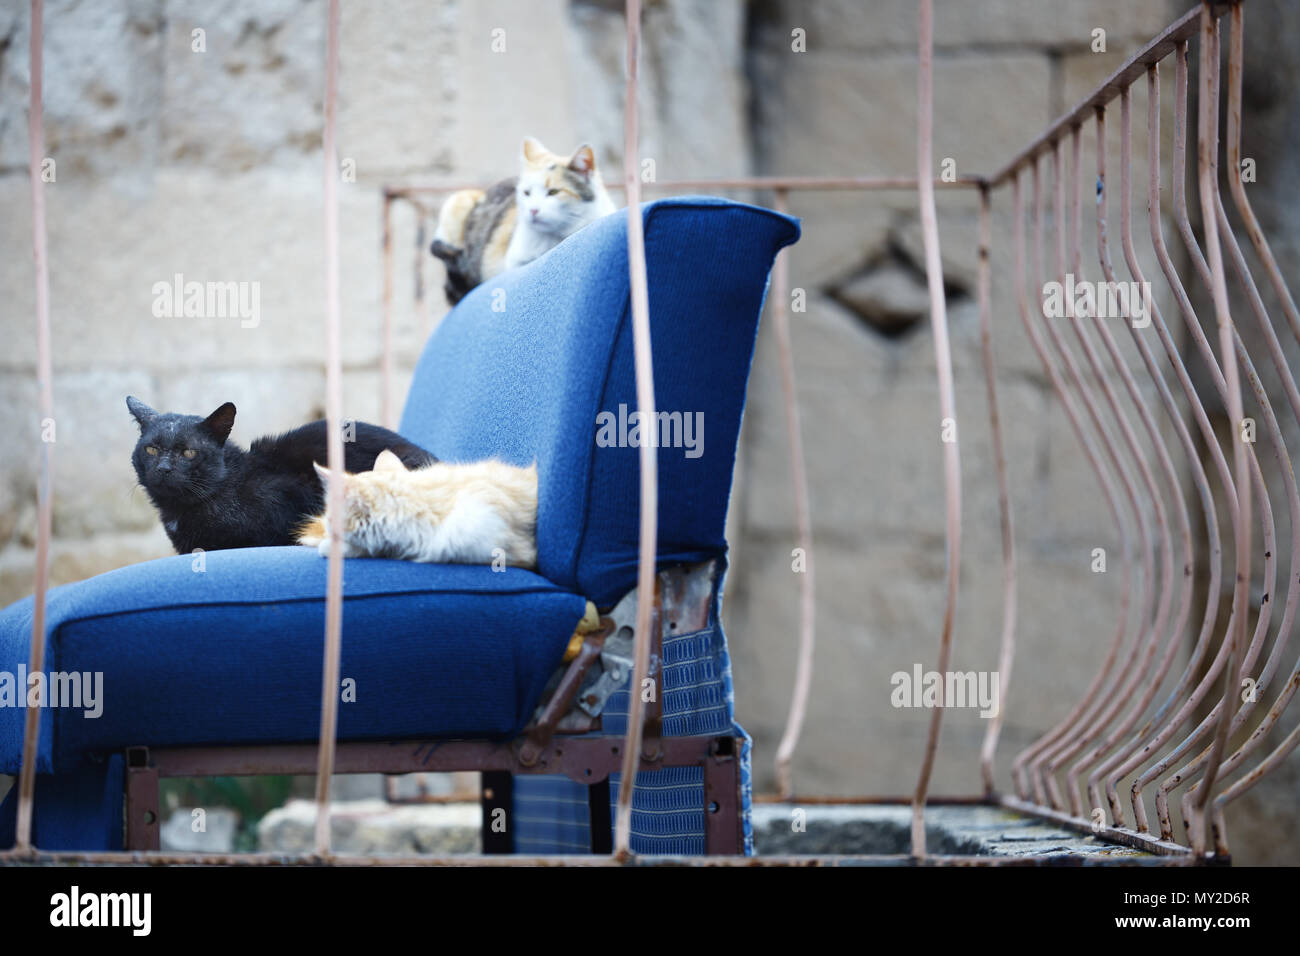 Three undomesticated cats on a blue abandoned arm-chair. Mexico - Stock Image